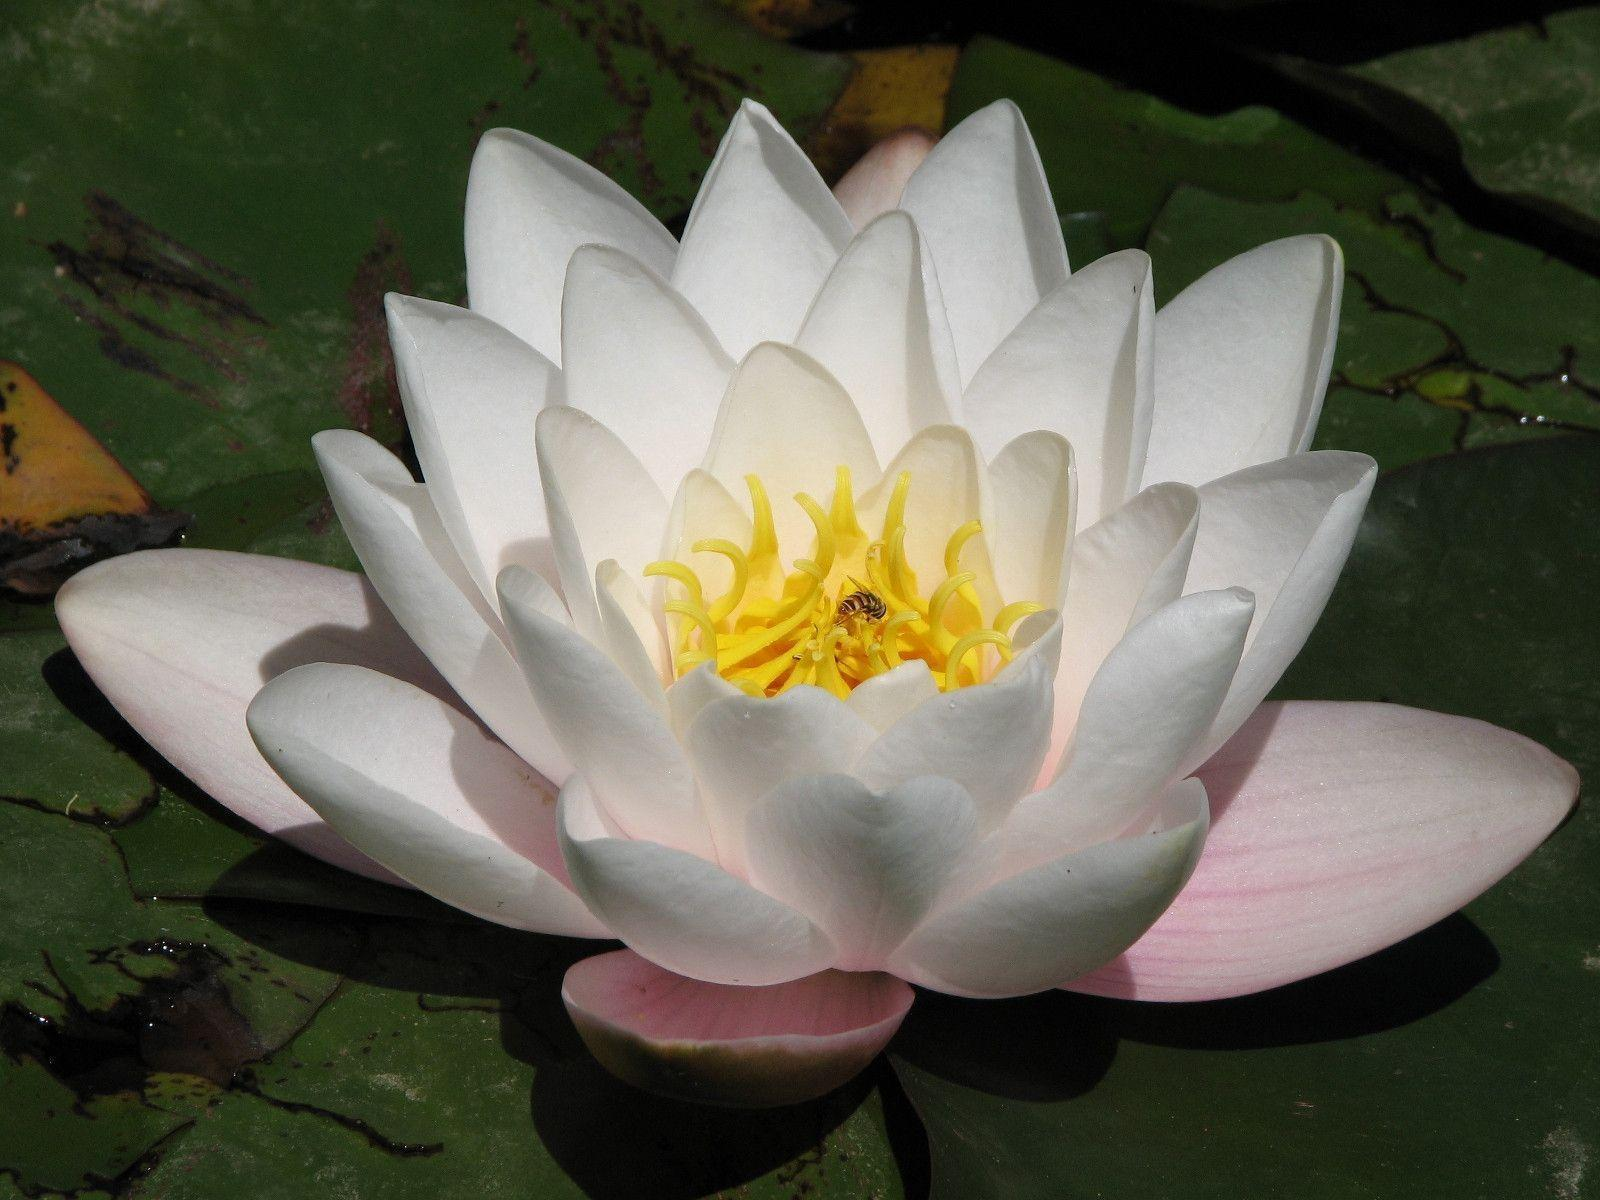 Lotus flower wallpapers wallpaper cave lotus flower hd wallpaper lotus flower pictures new wallpapers izmirmasajfo